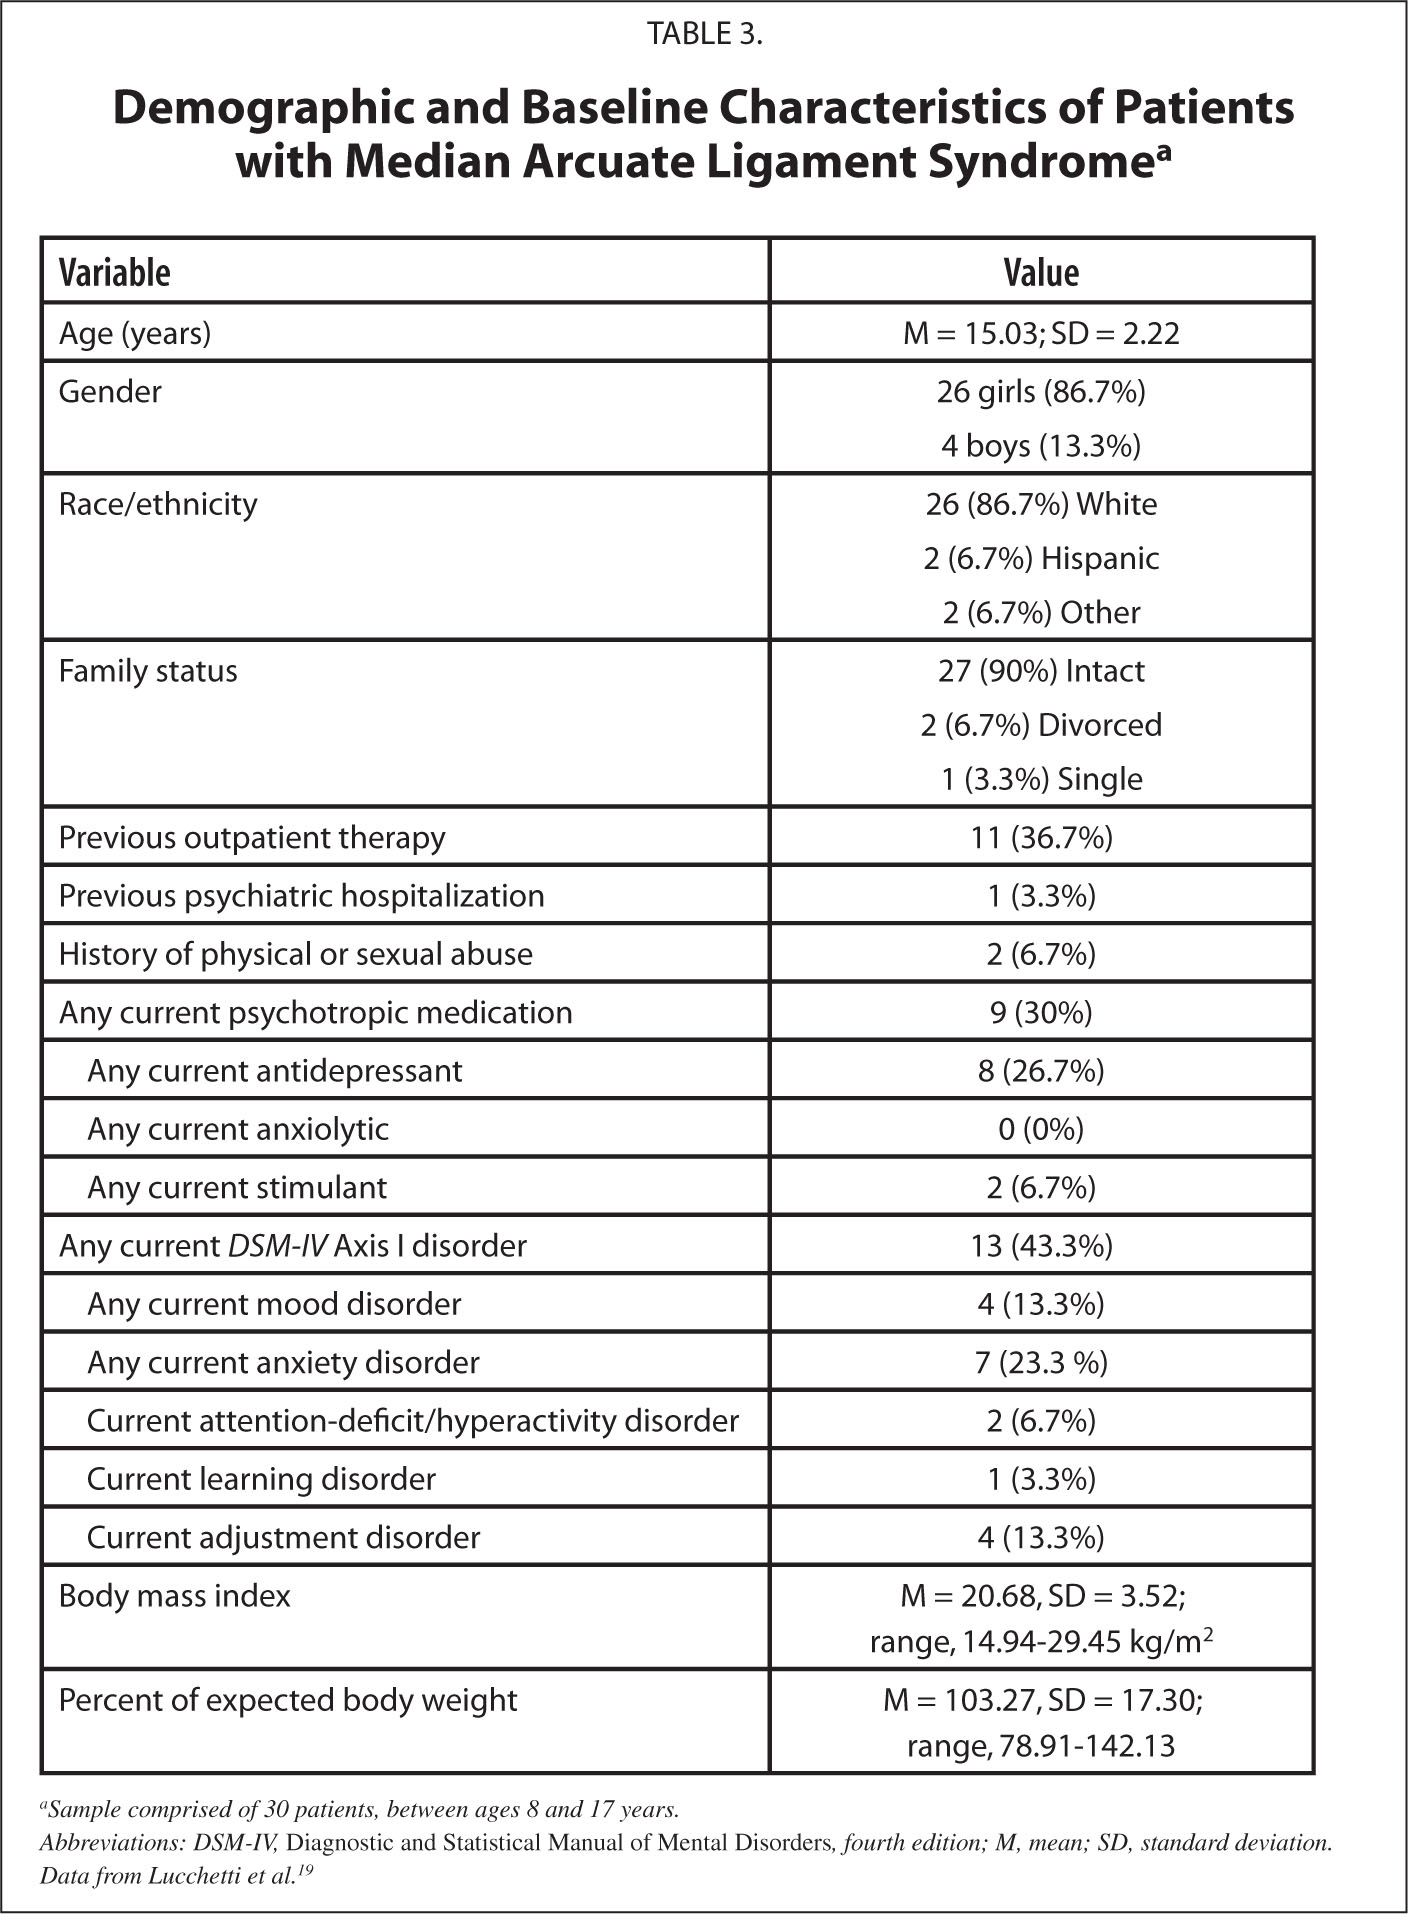 Demographic and Baseline Characteristics of Patients with Median Arcuate Ligament Syndromea